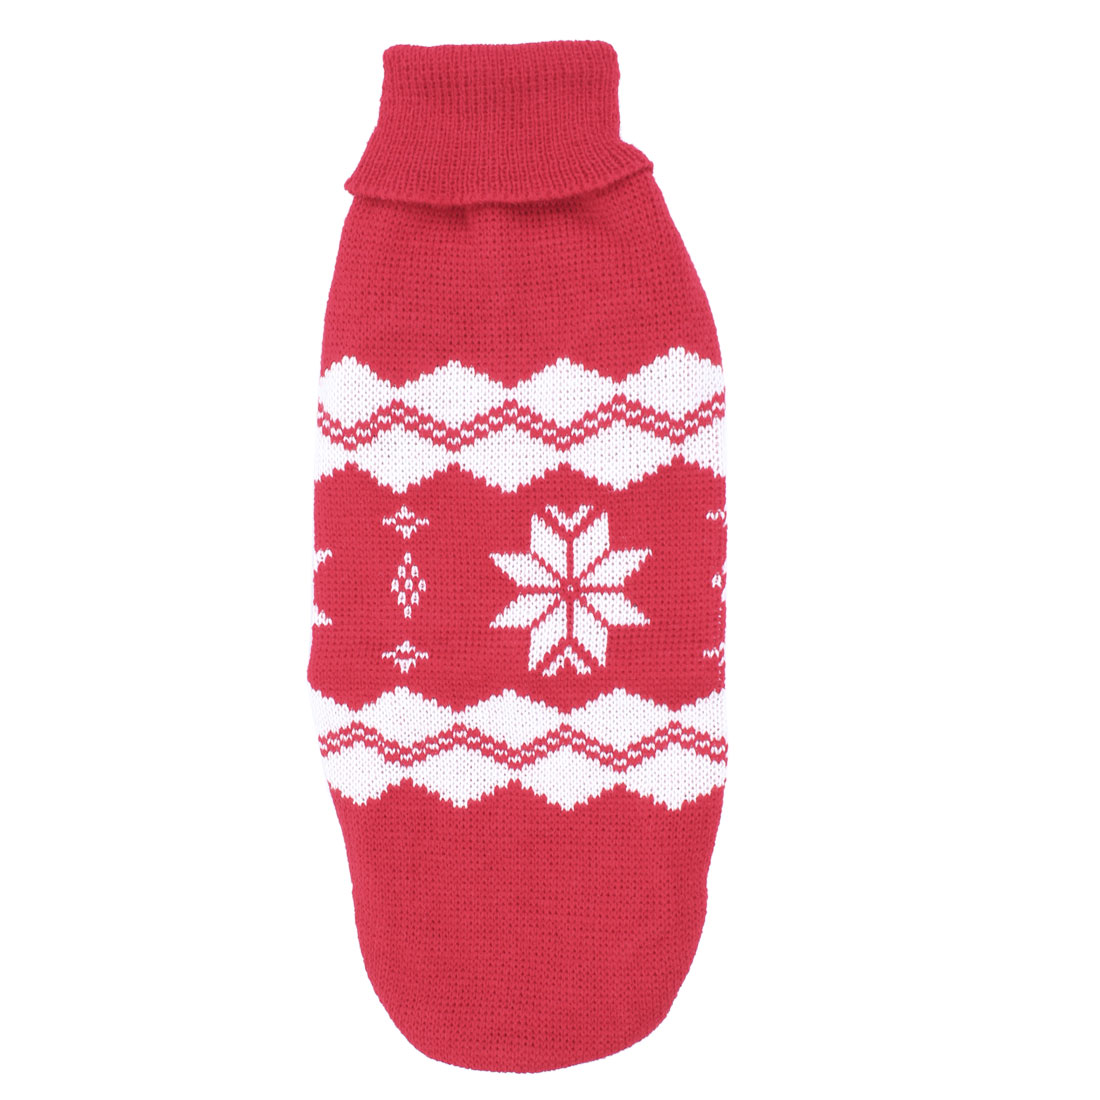 Pet Dog Yorkie Snowflake Print Ribbed Cuff Knitwear Turtleneck Apparel Sweater White Red Size S